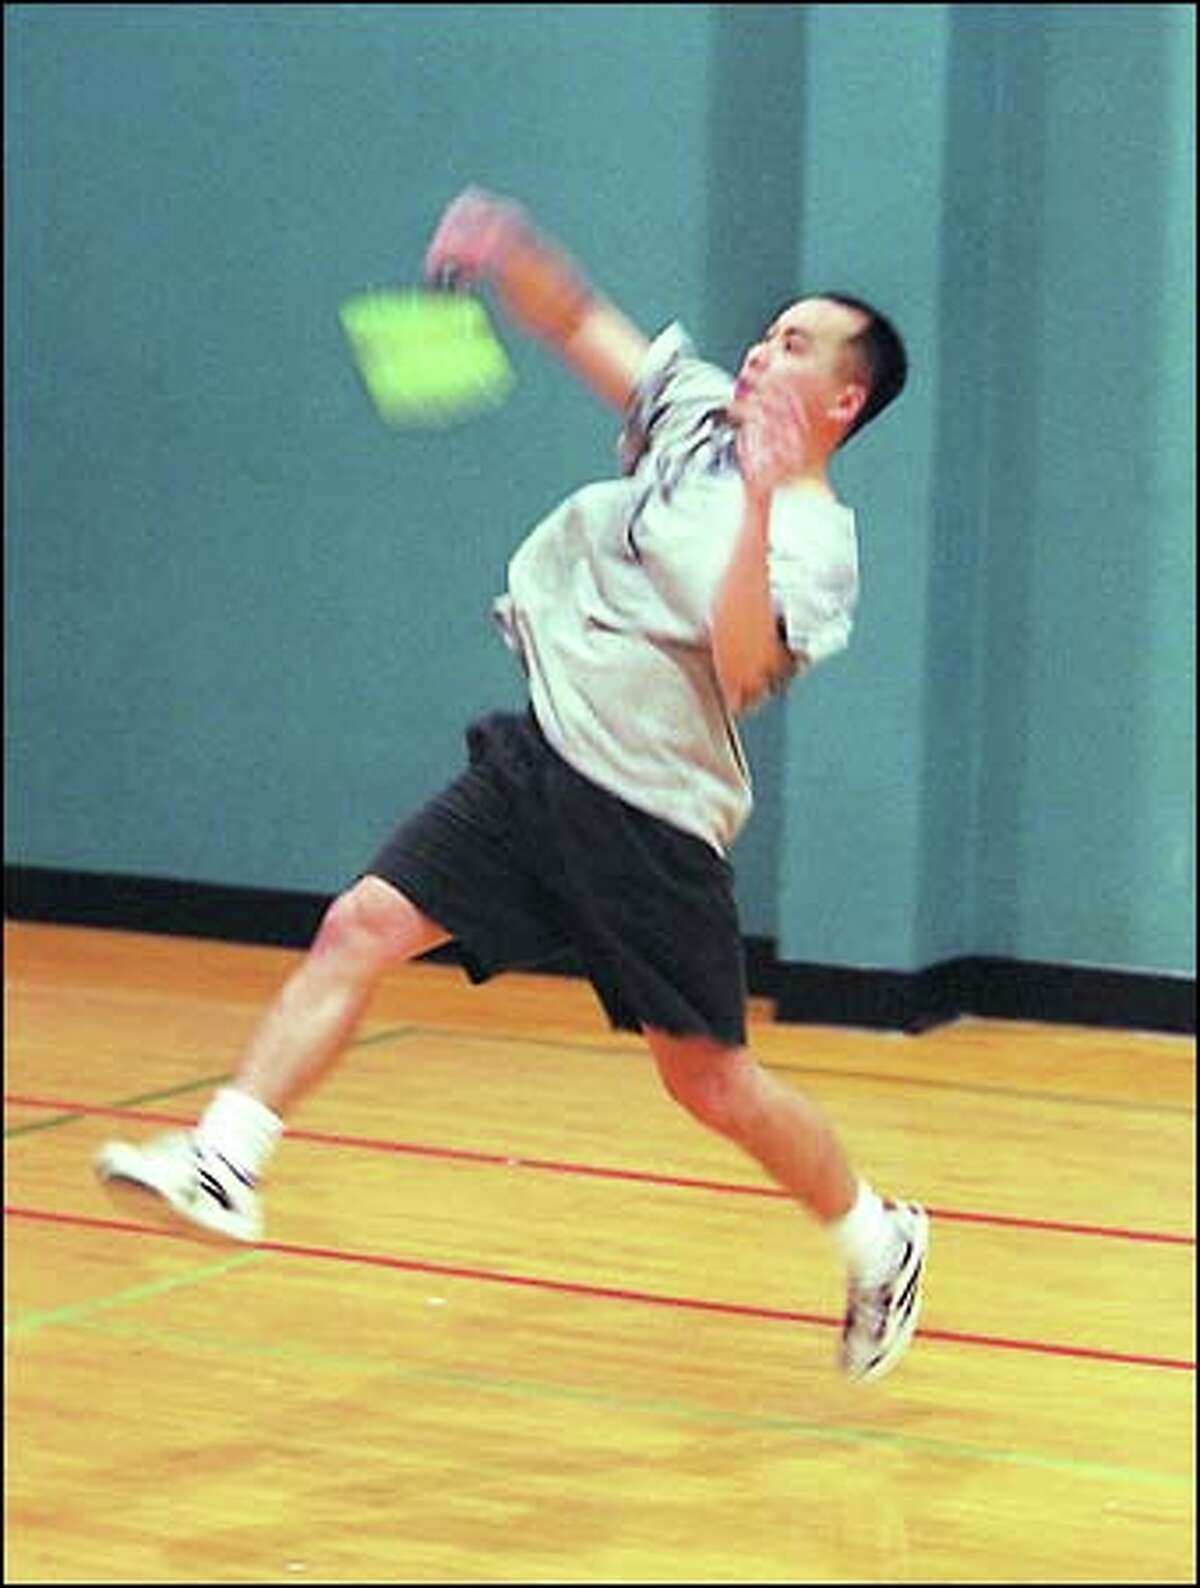 Federal Way podiatrist Andrew Soo, who holds state badminton titles in singles and doubles, leaves his feet during a practice at the Seattle Badminton Club.